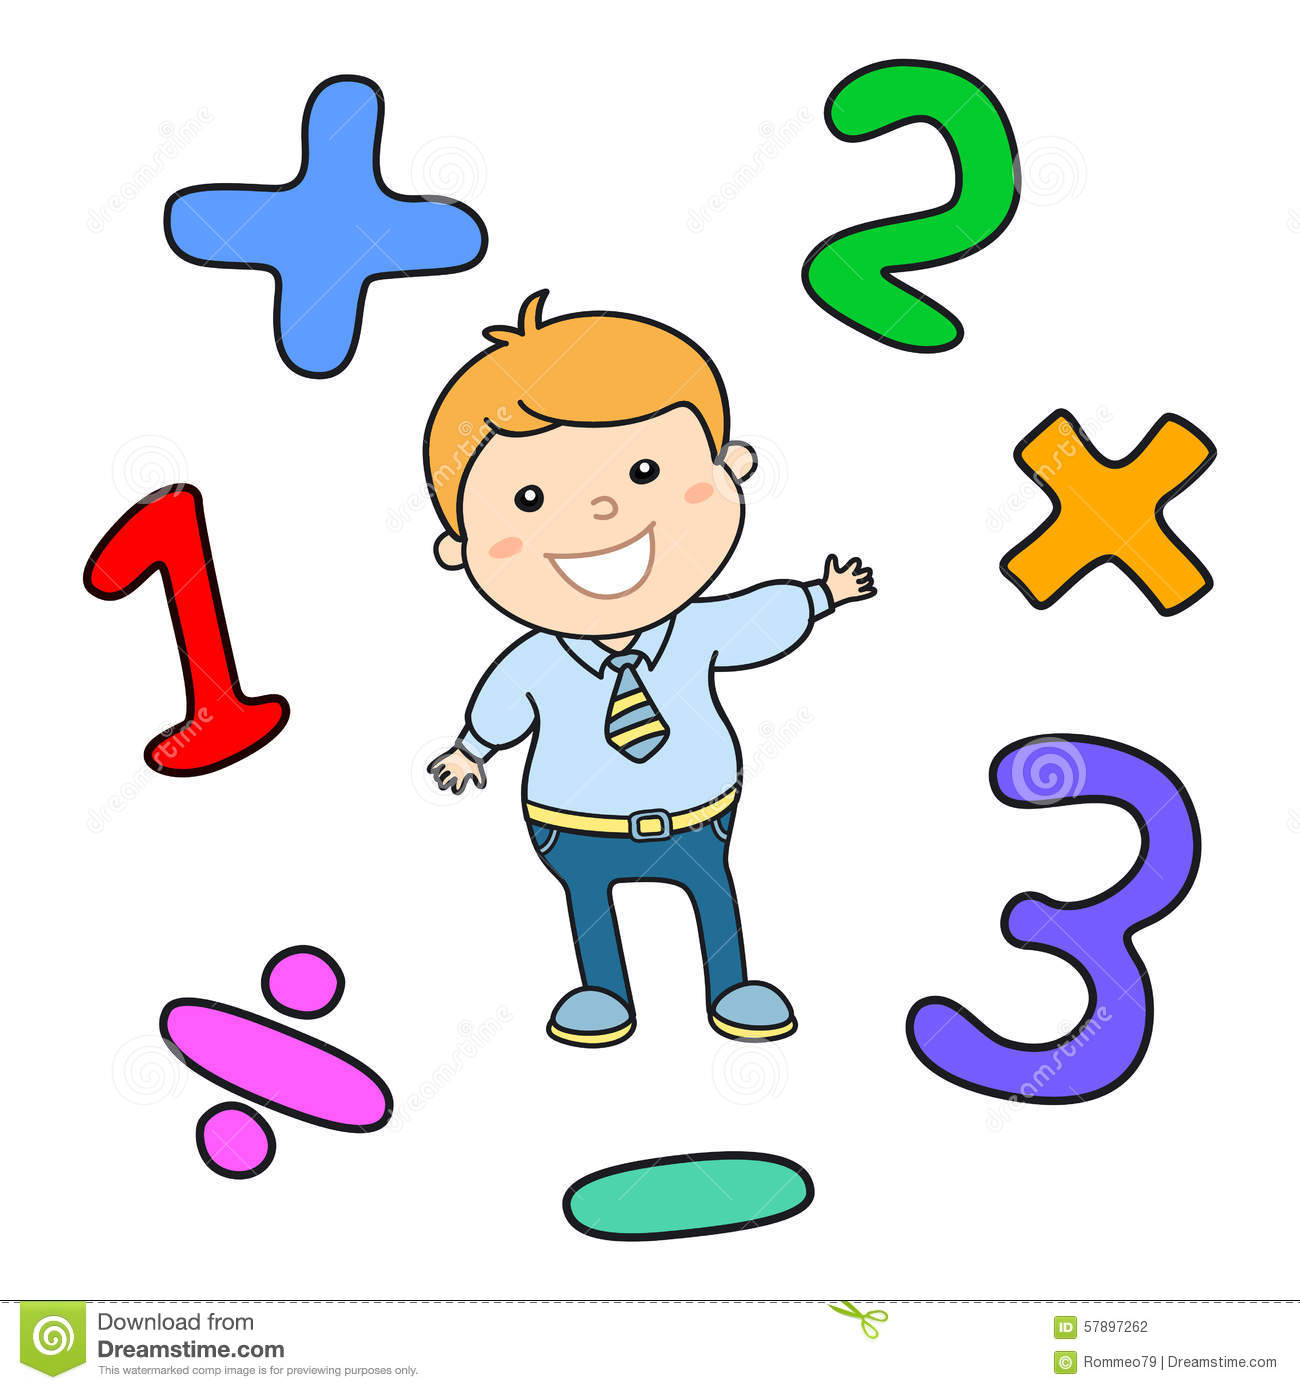 Cartoon Style Math Learning Game Illustration. Mathematical.